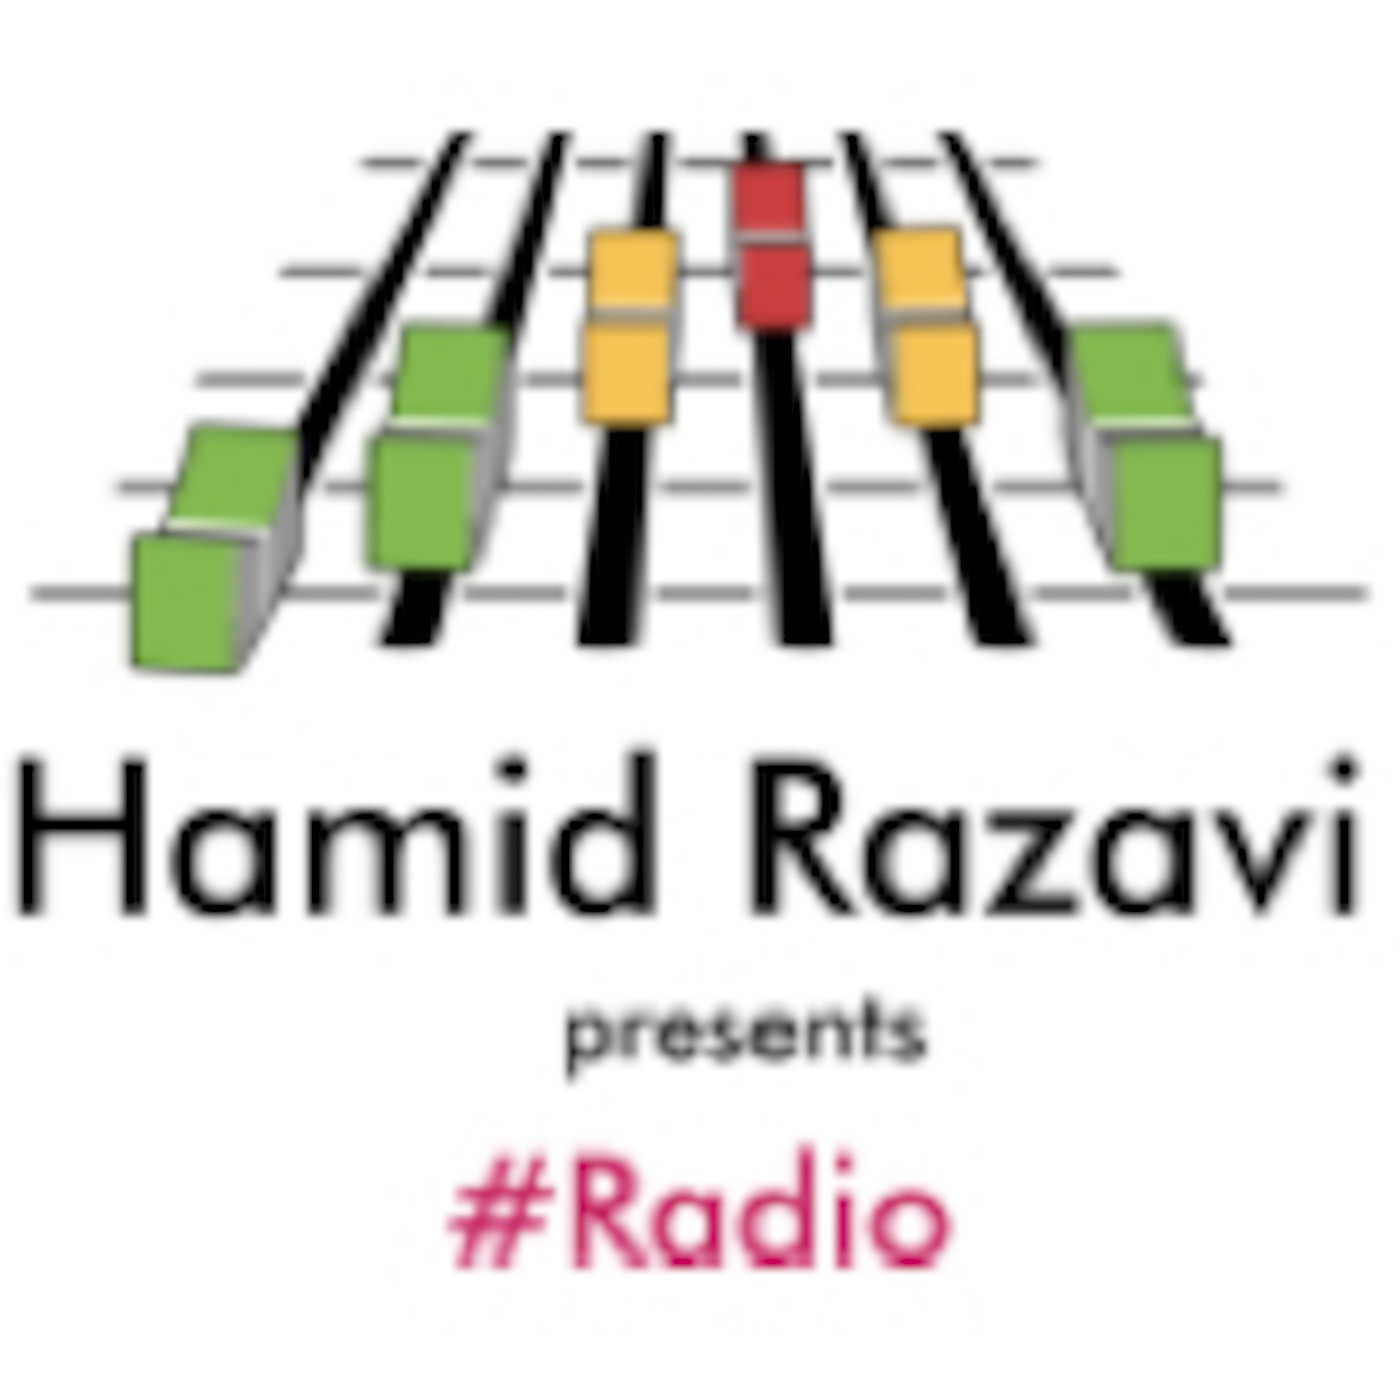 Hamid Razavi Presents #Radio